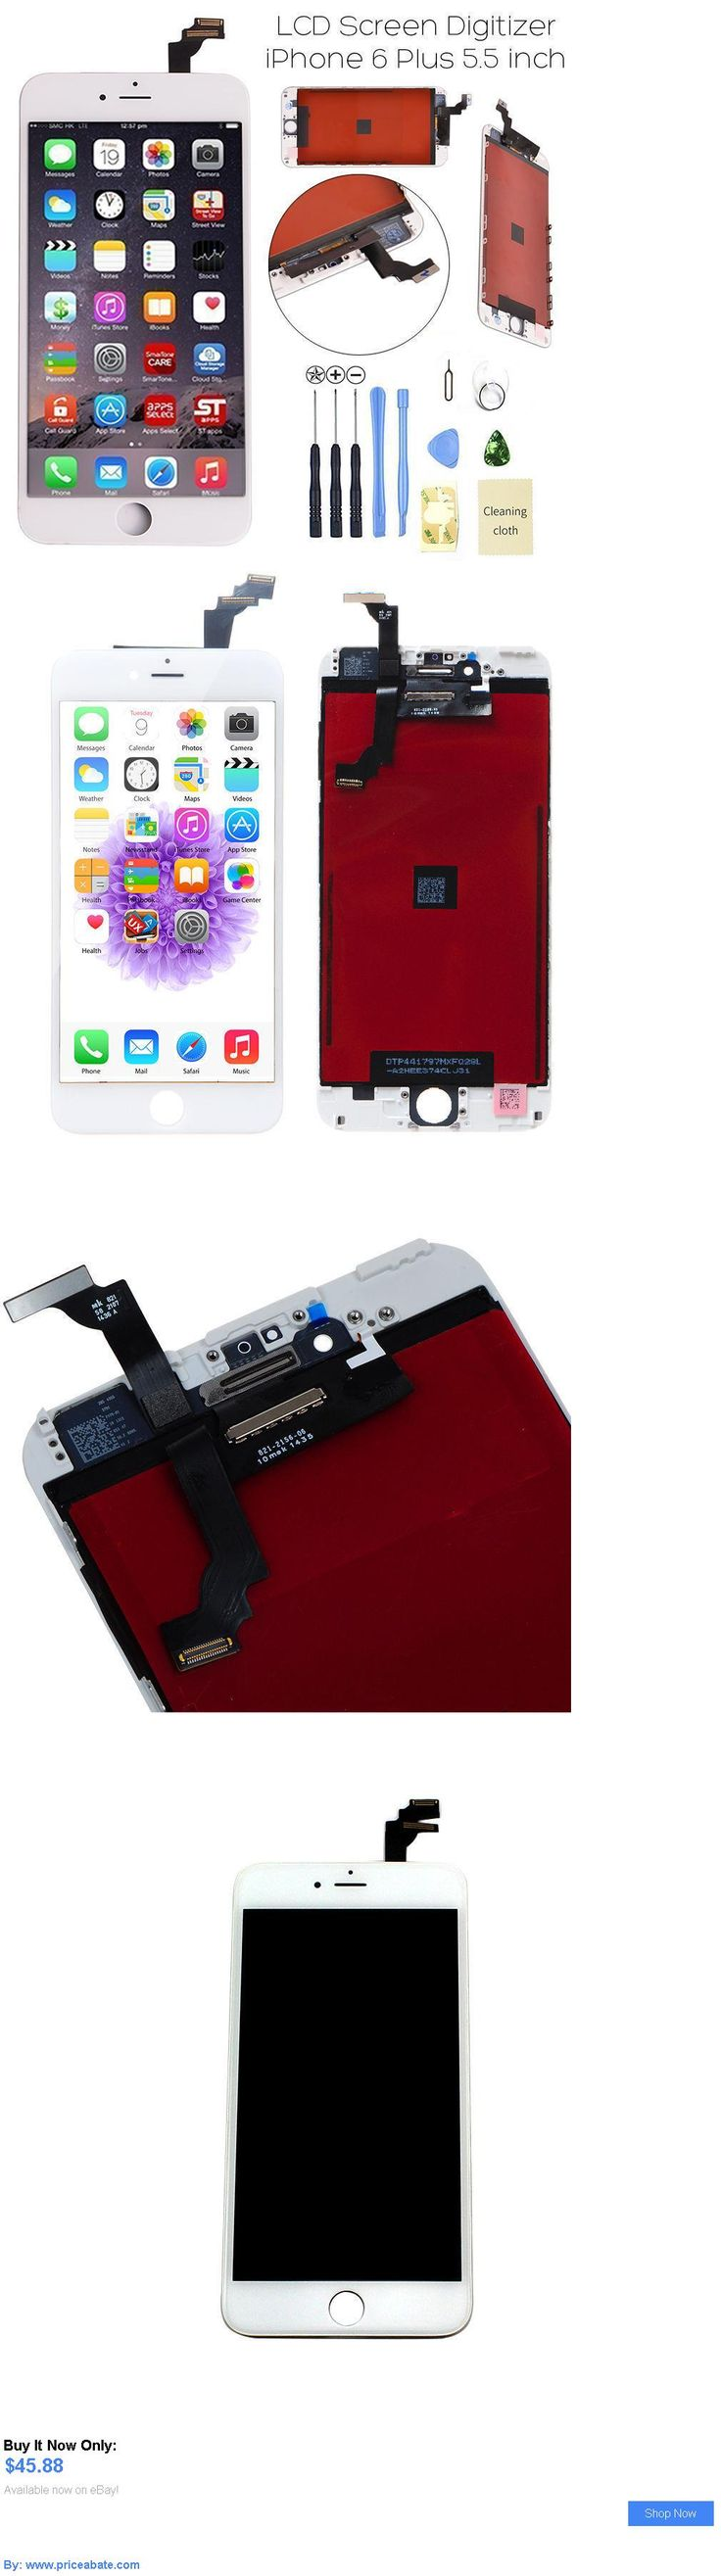 general for sale: For Iphone 6 Plus 5.5 White Lcd Digitizer Screen Assembly Replacement Frame Usa BUY IT NOW ONLY: $45.88 #priceabategeneralforsale OR #priceabate